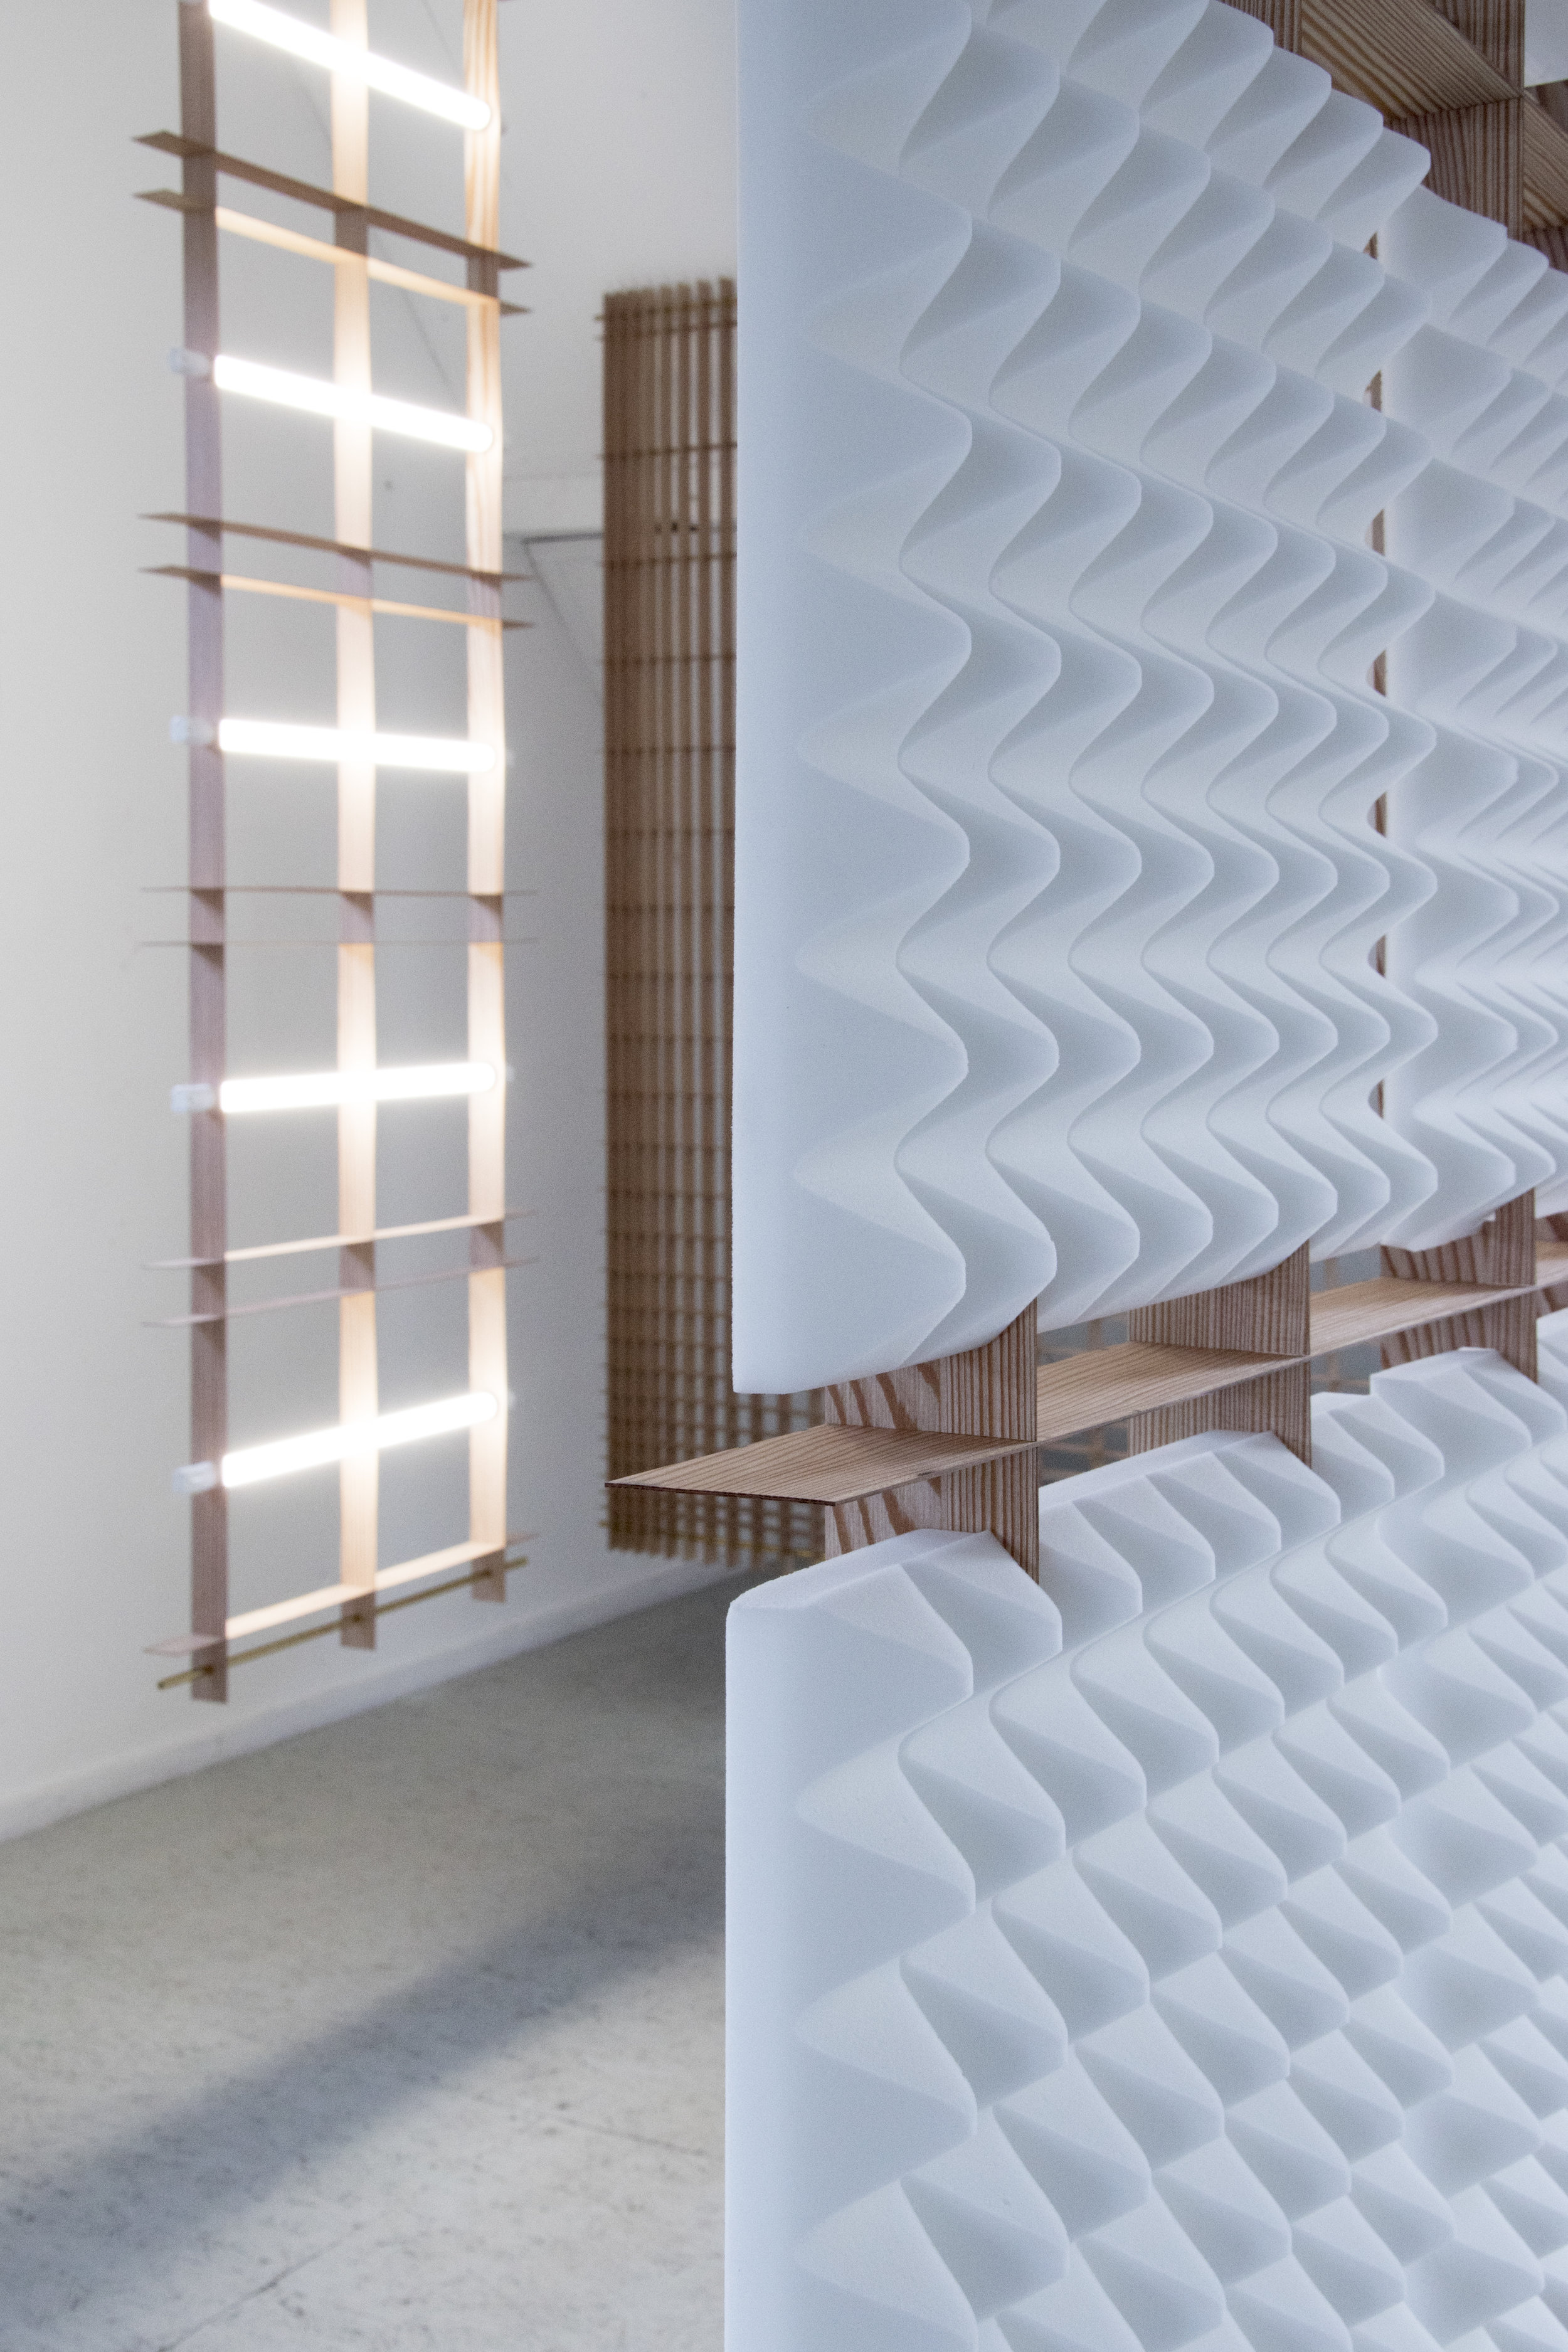 Process - Grid Dividers - David Derksen Design14.jpg